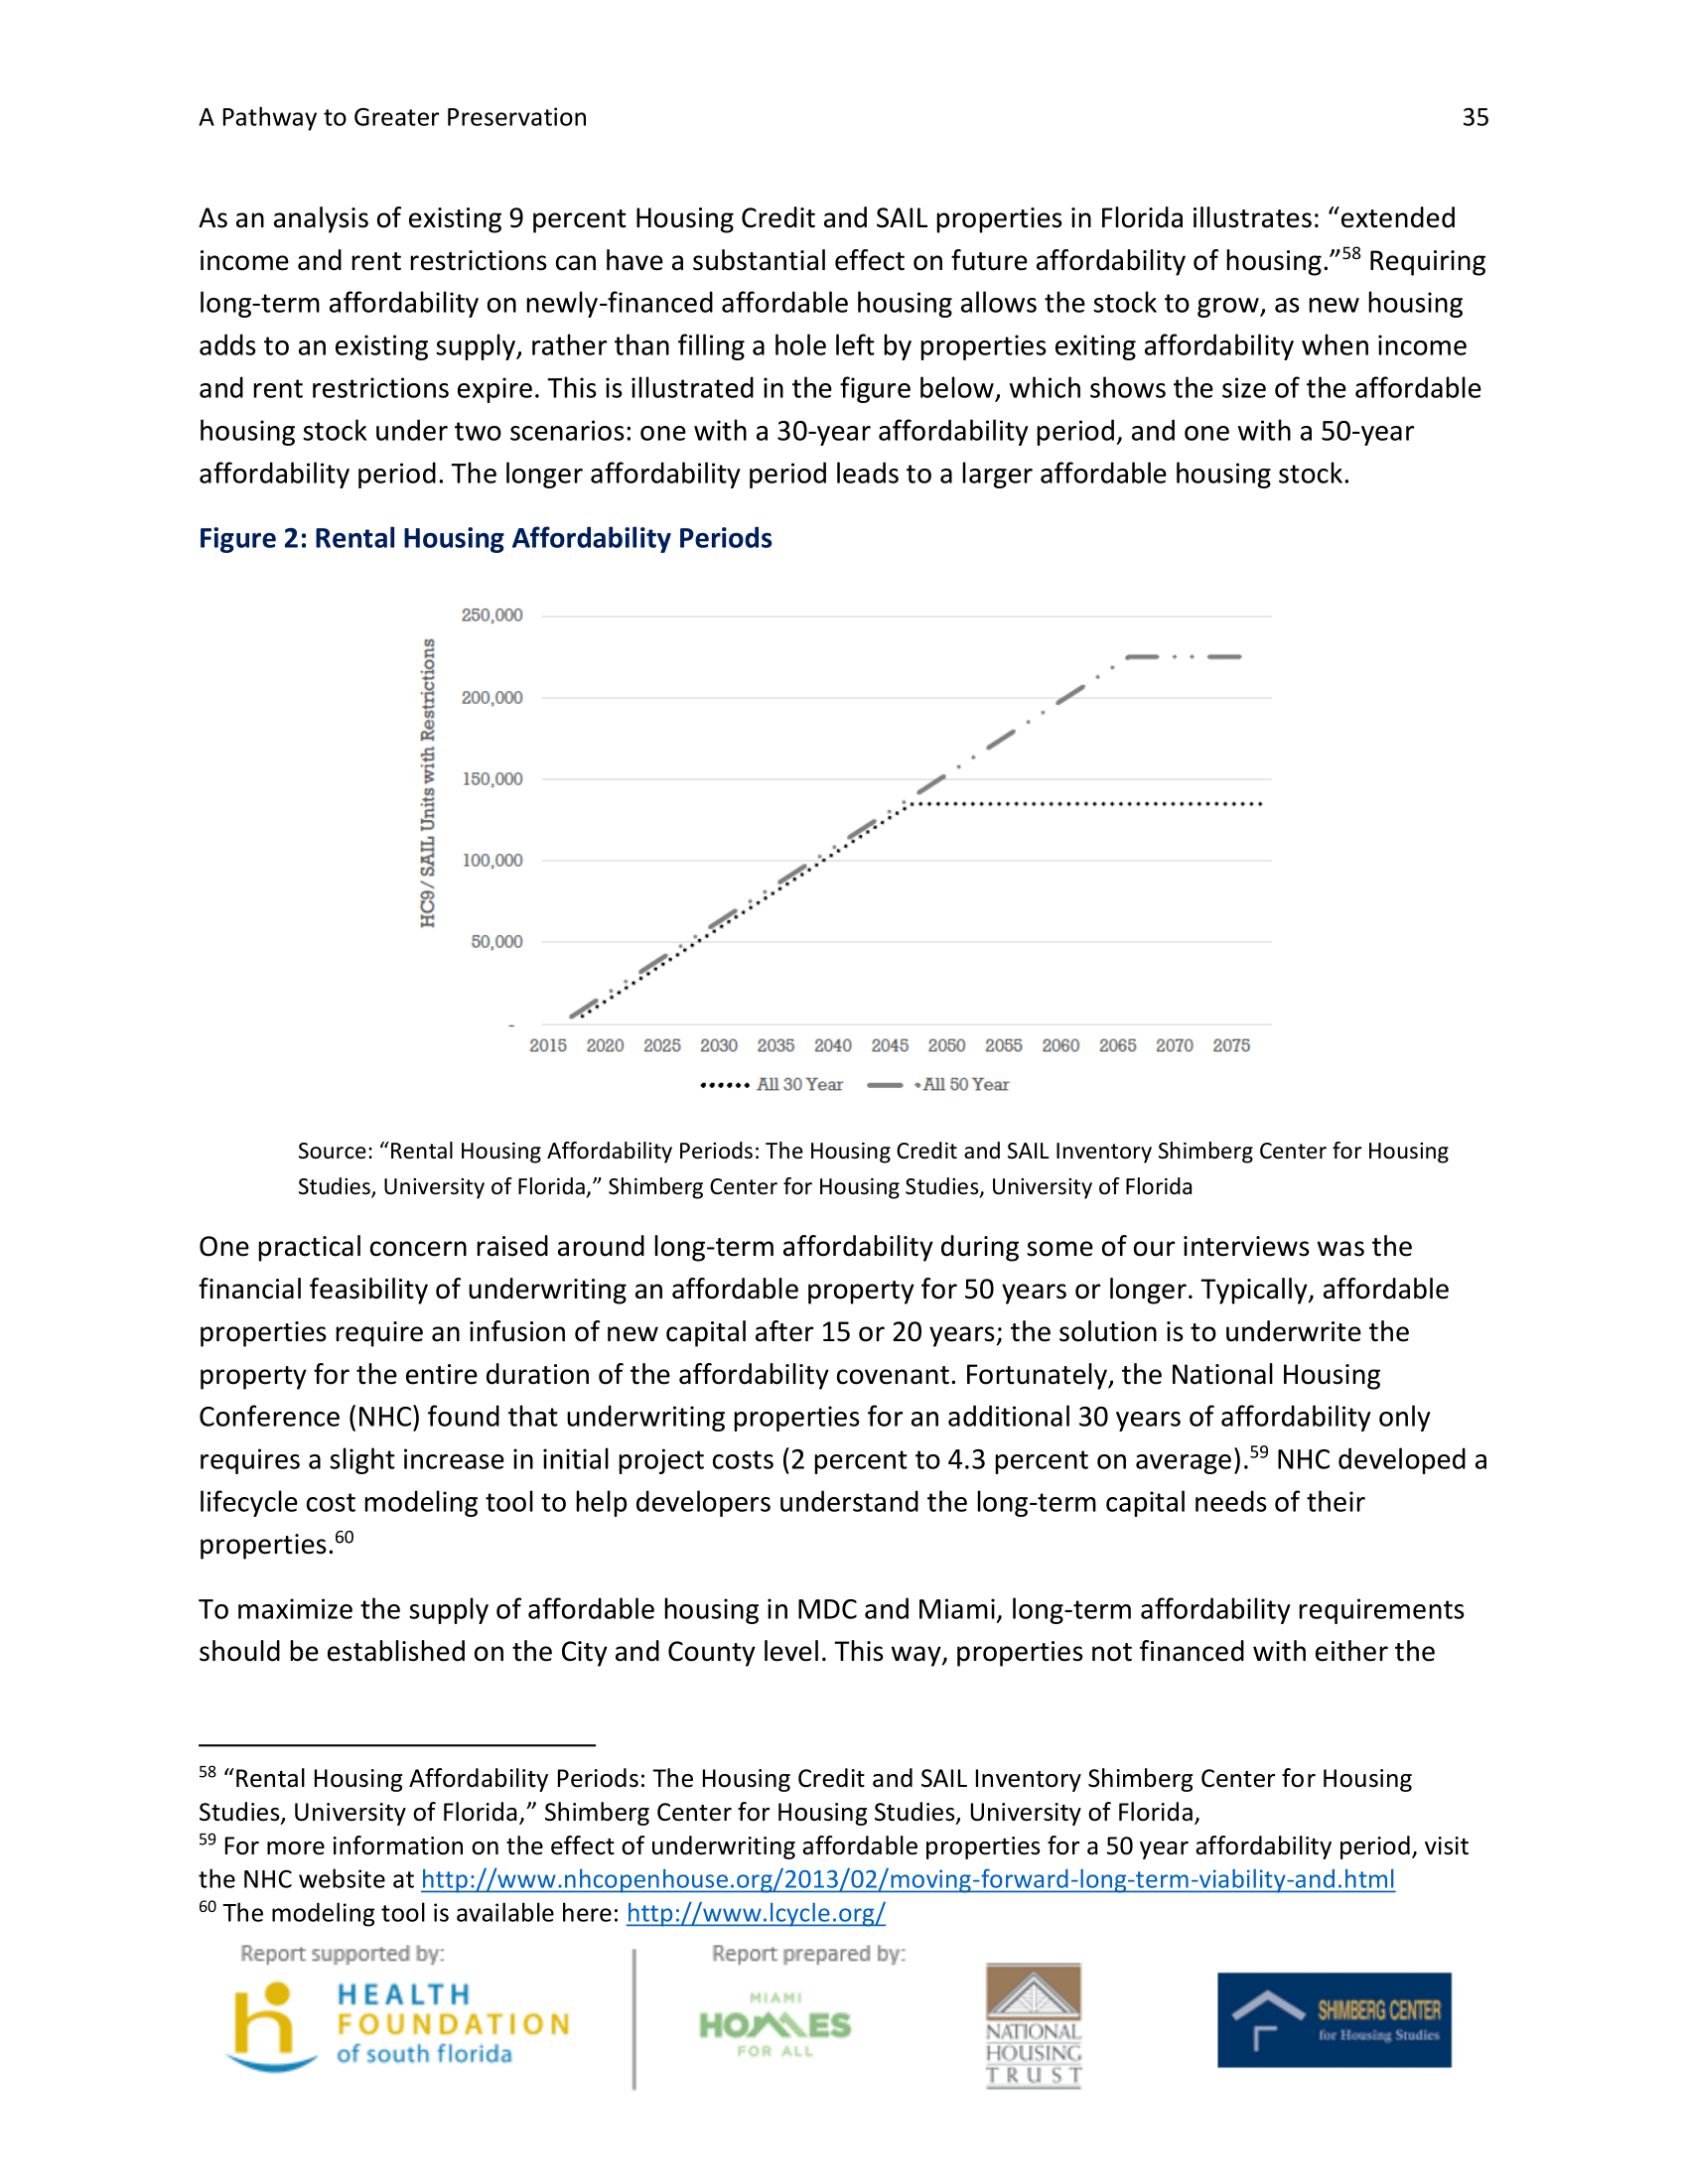 A Pathway to Greater Preservation - February 2018-43.png